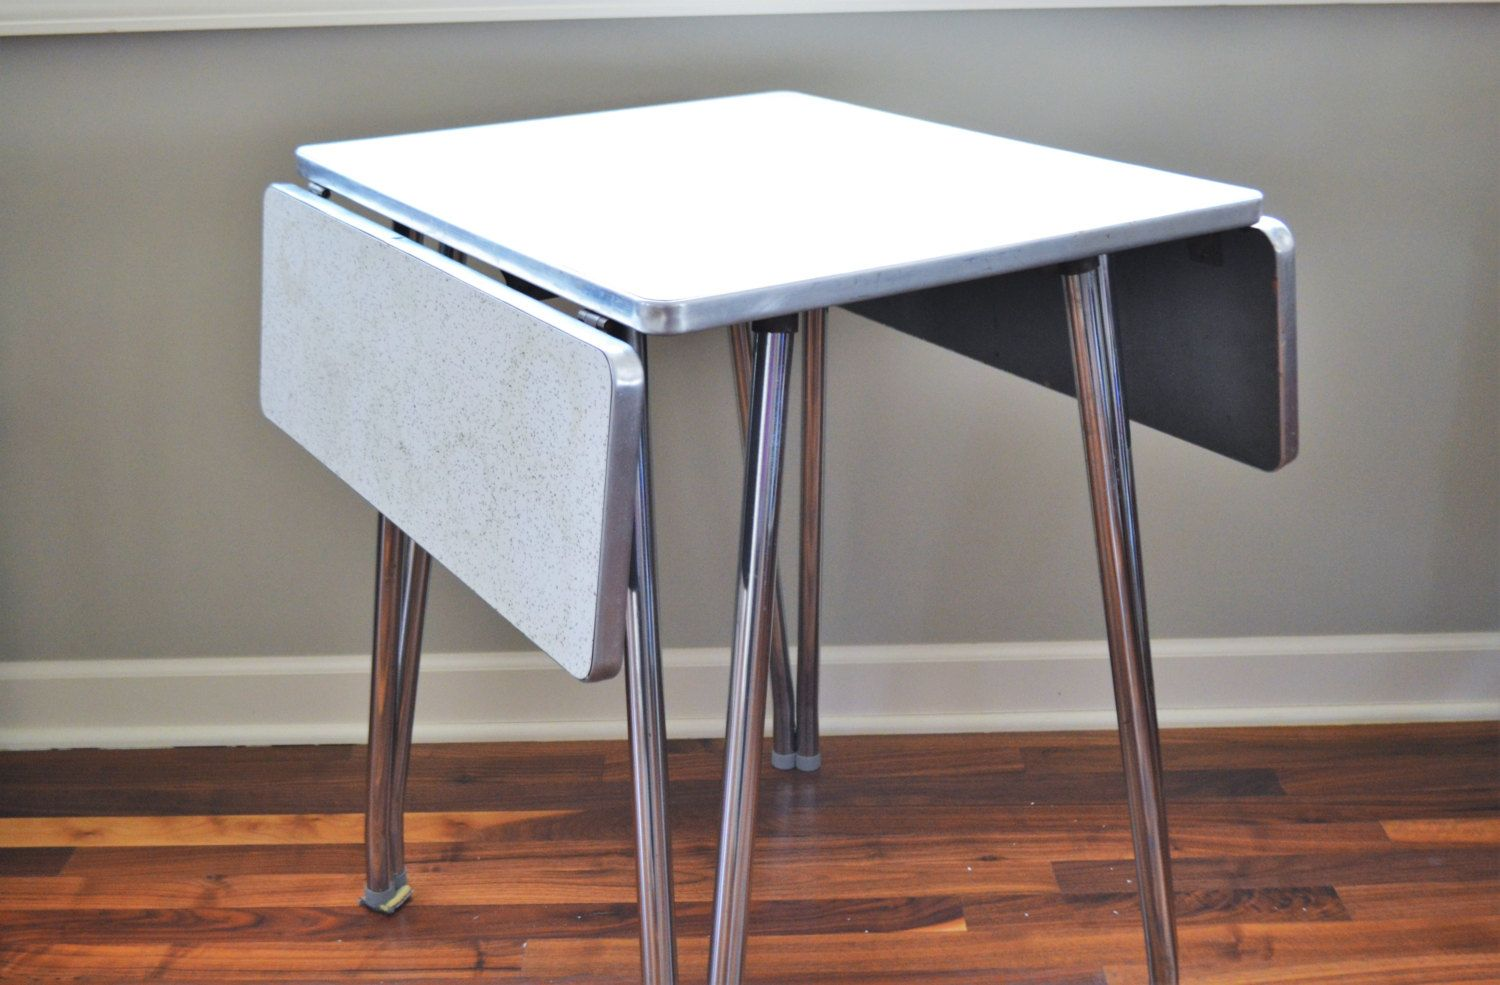 1950s Formica Top Drop Leaf Table With Chrome Legs Retro Kitchen